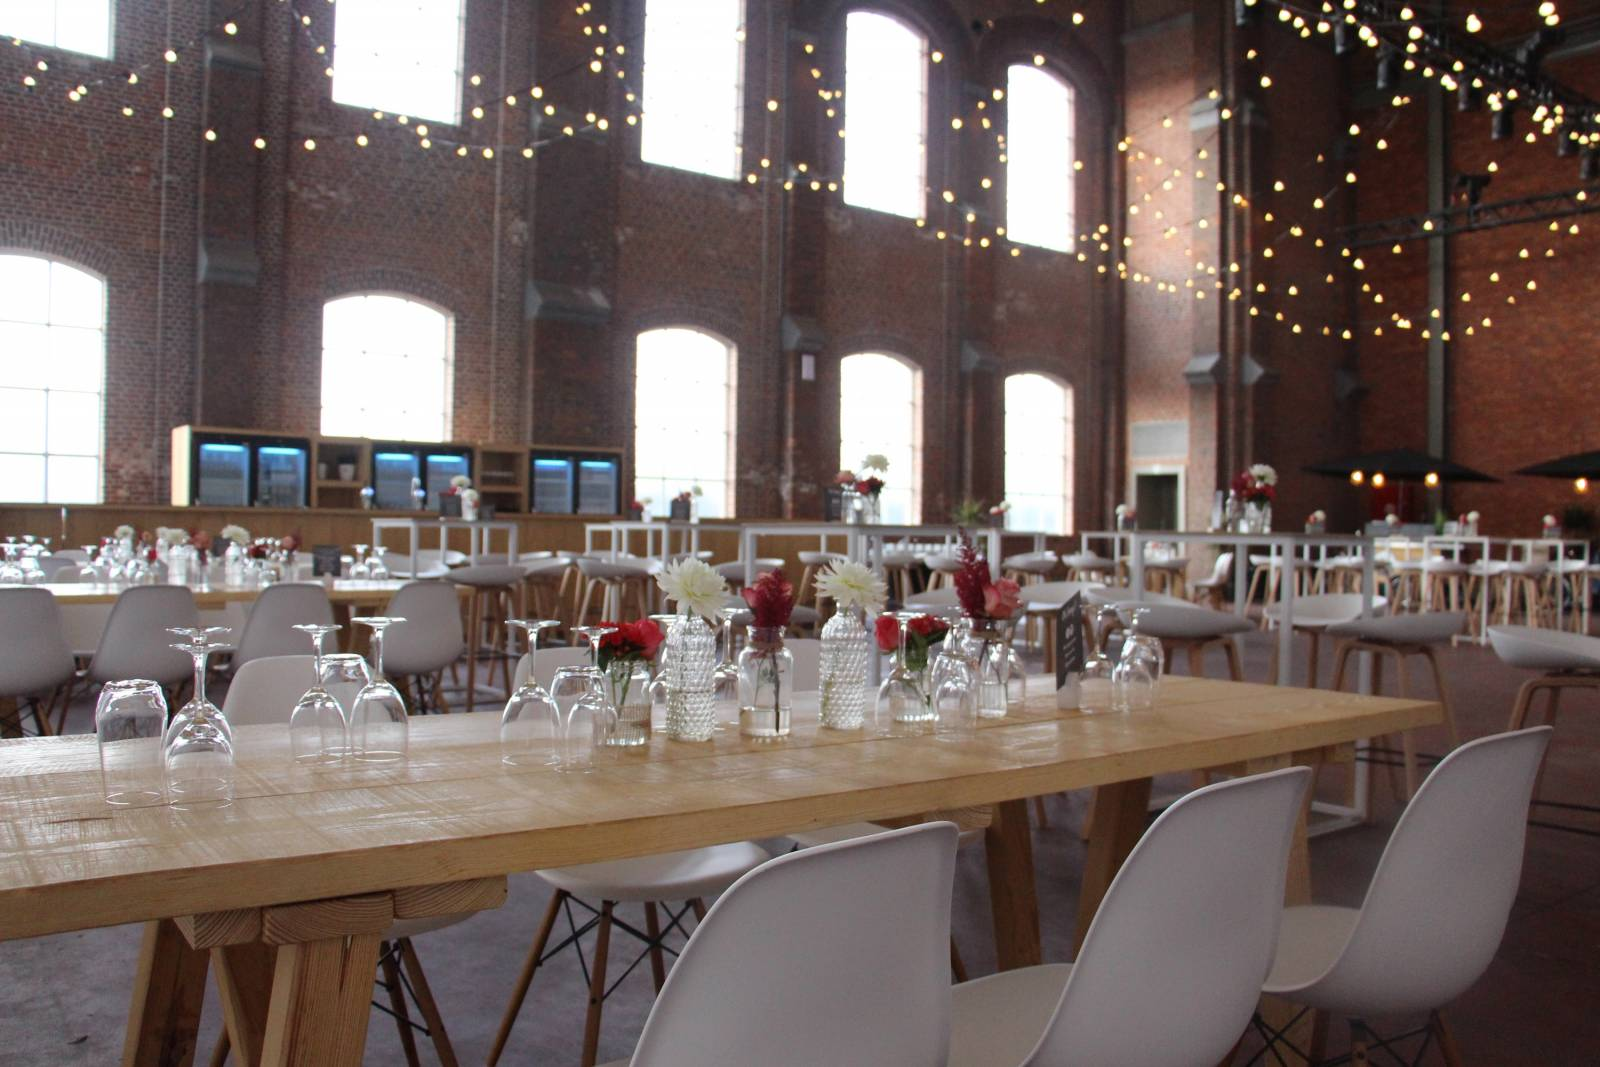 Hangar 43 - Feestzaal Oost-Vlaanderen - Industrieel - House of Weddings - 34